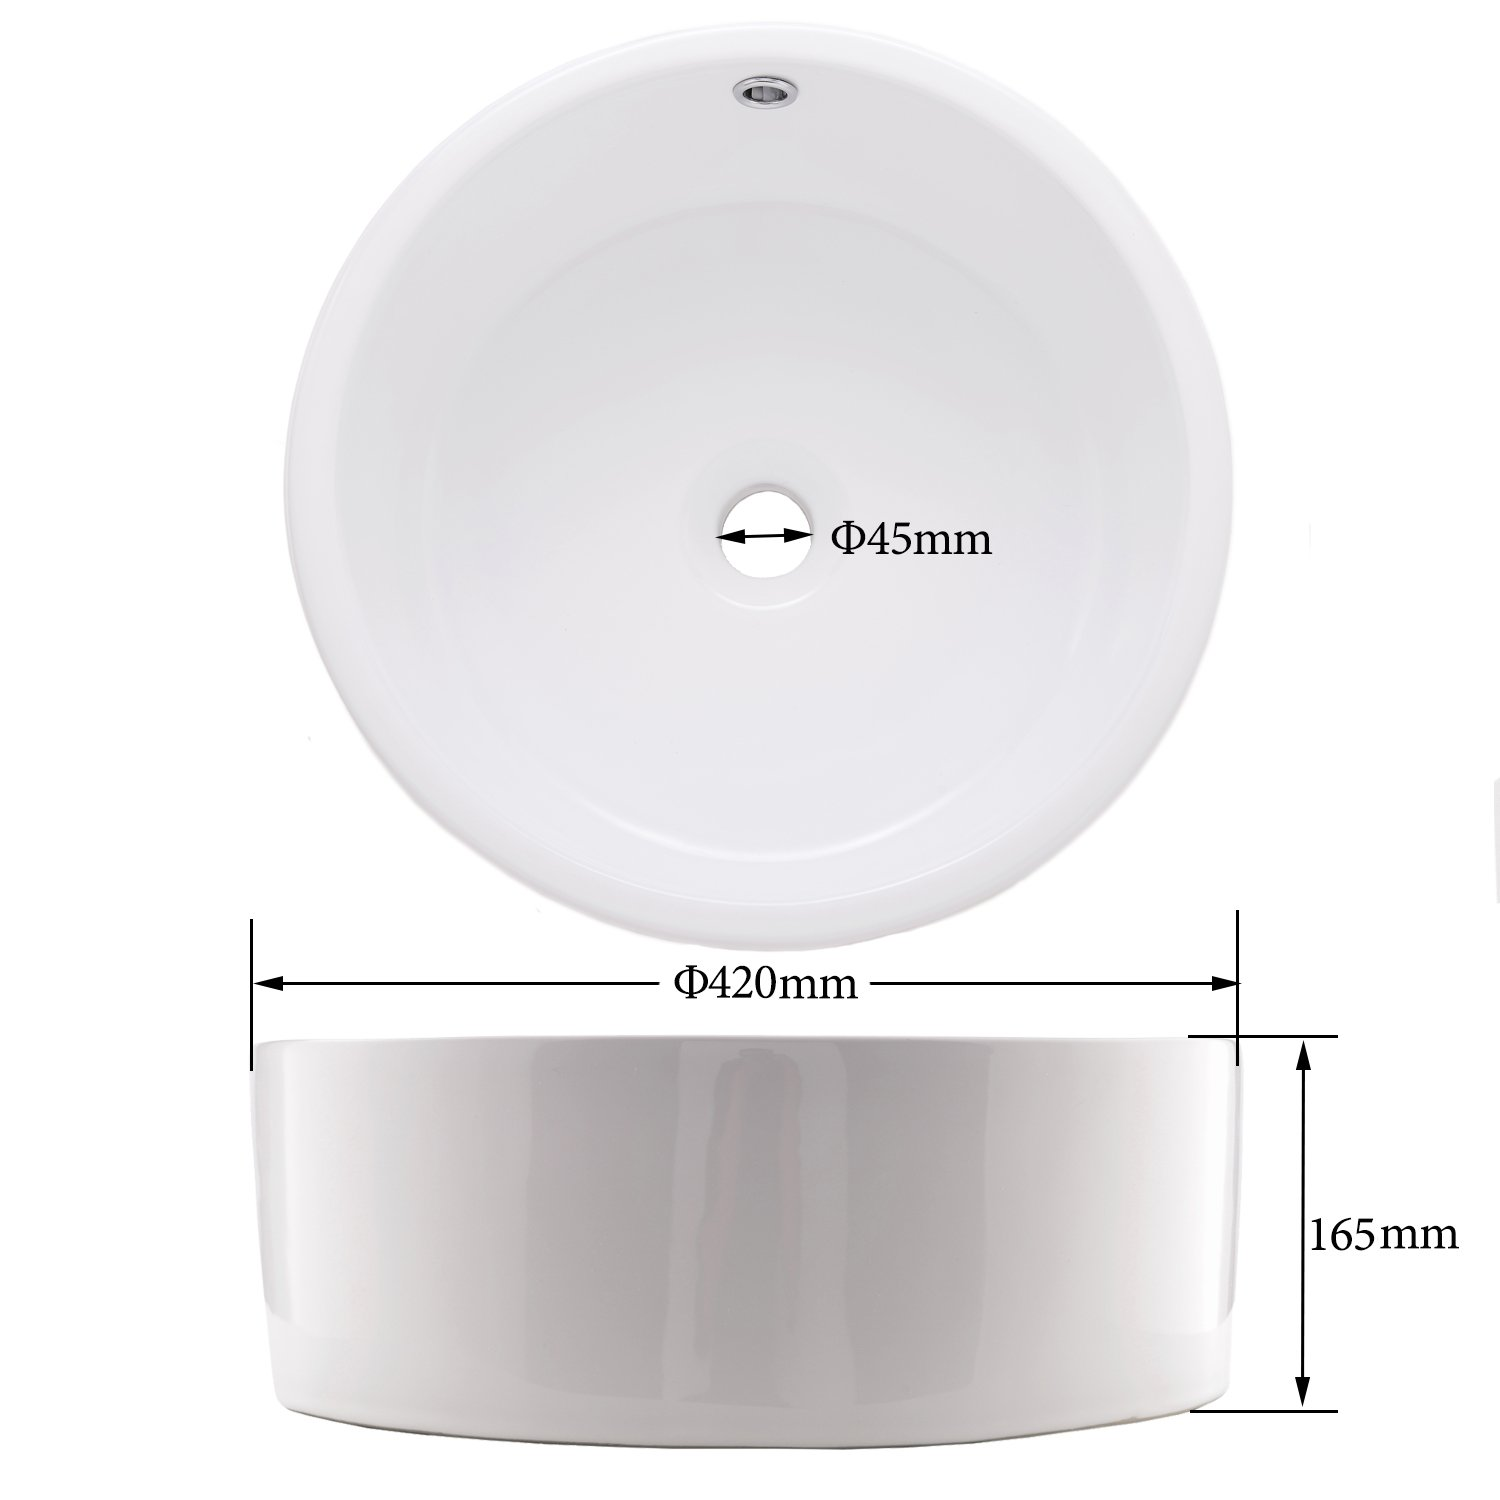 Hotis White Porcelain Ceramic Countertop Bowl Lavatory Round Above Counter Vanity Bathroom Vessel Sink by HOTIS HOME (Image #6)